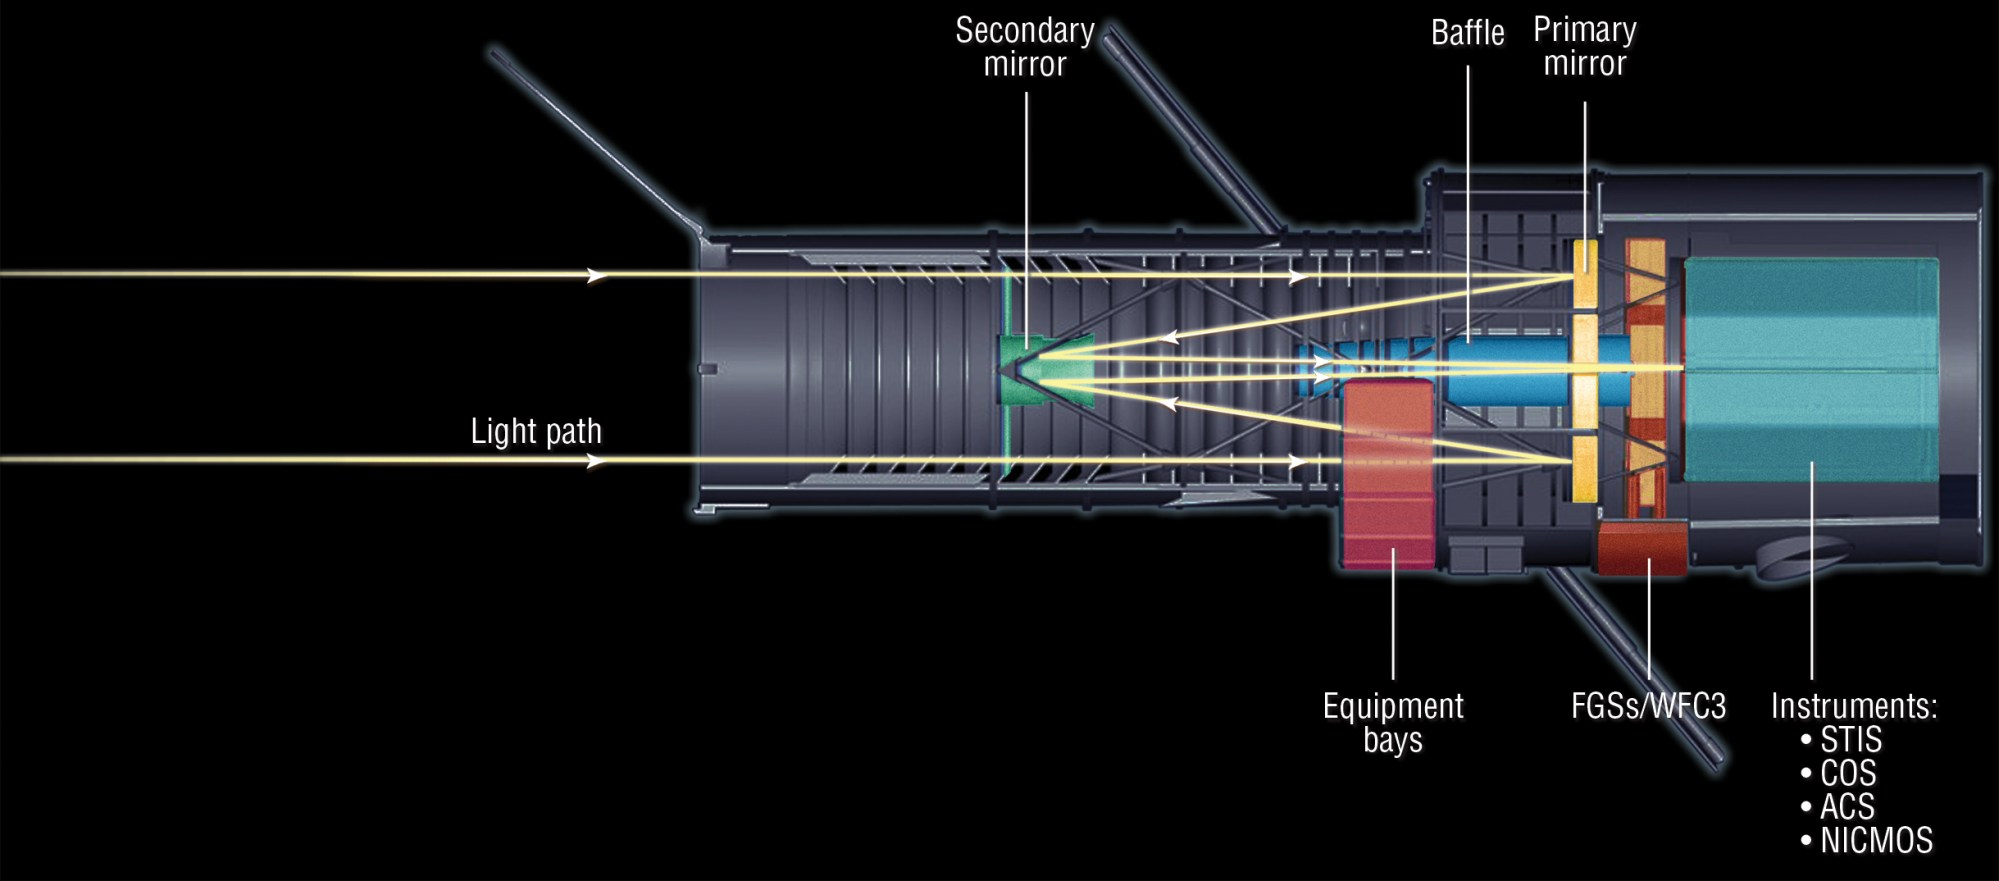 hight resolution of hst light path cross section diagram